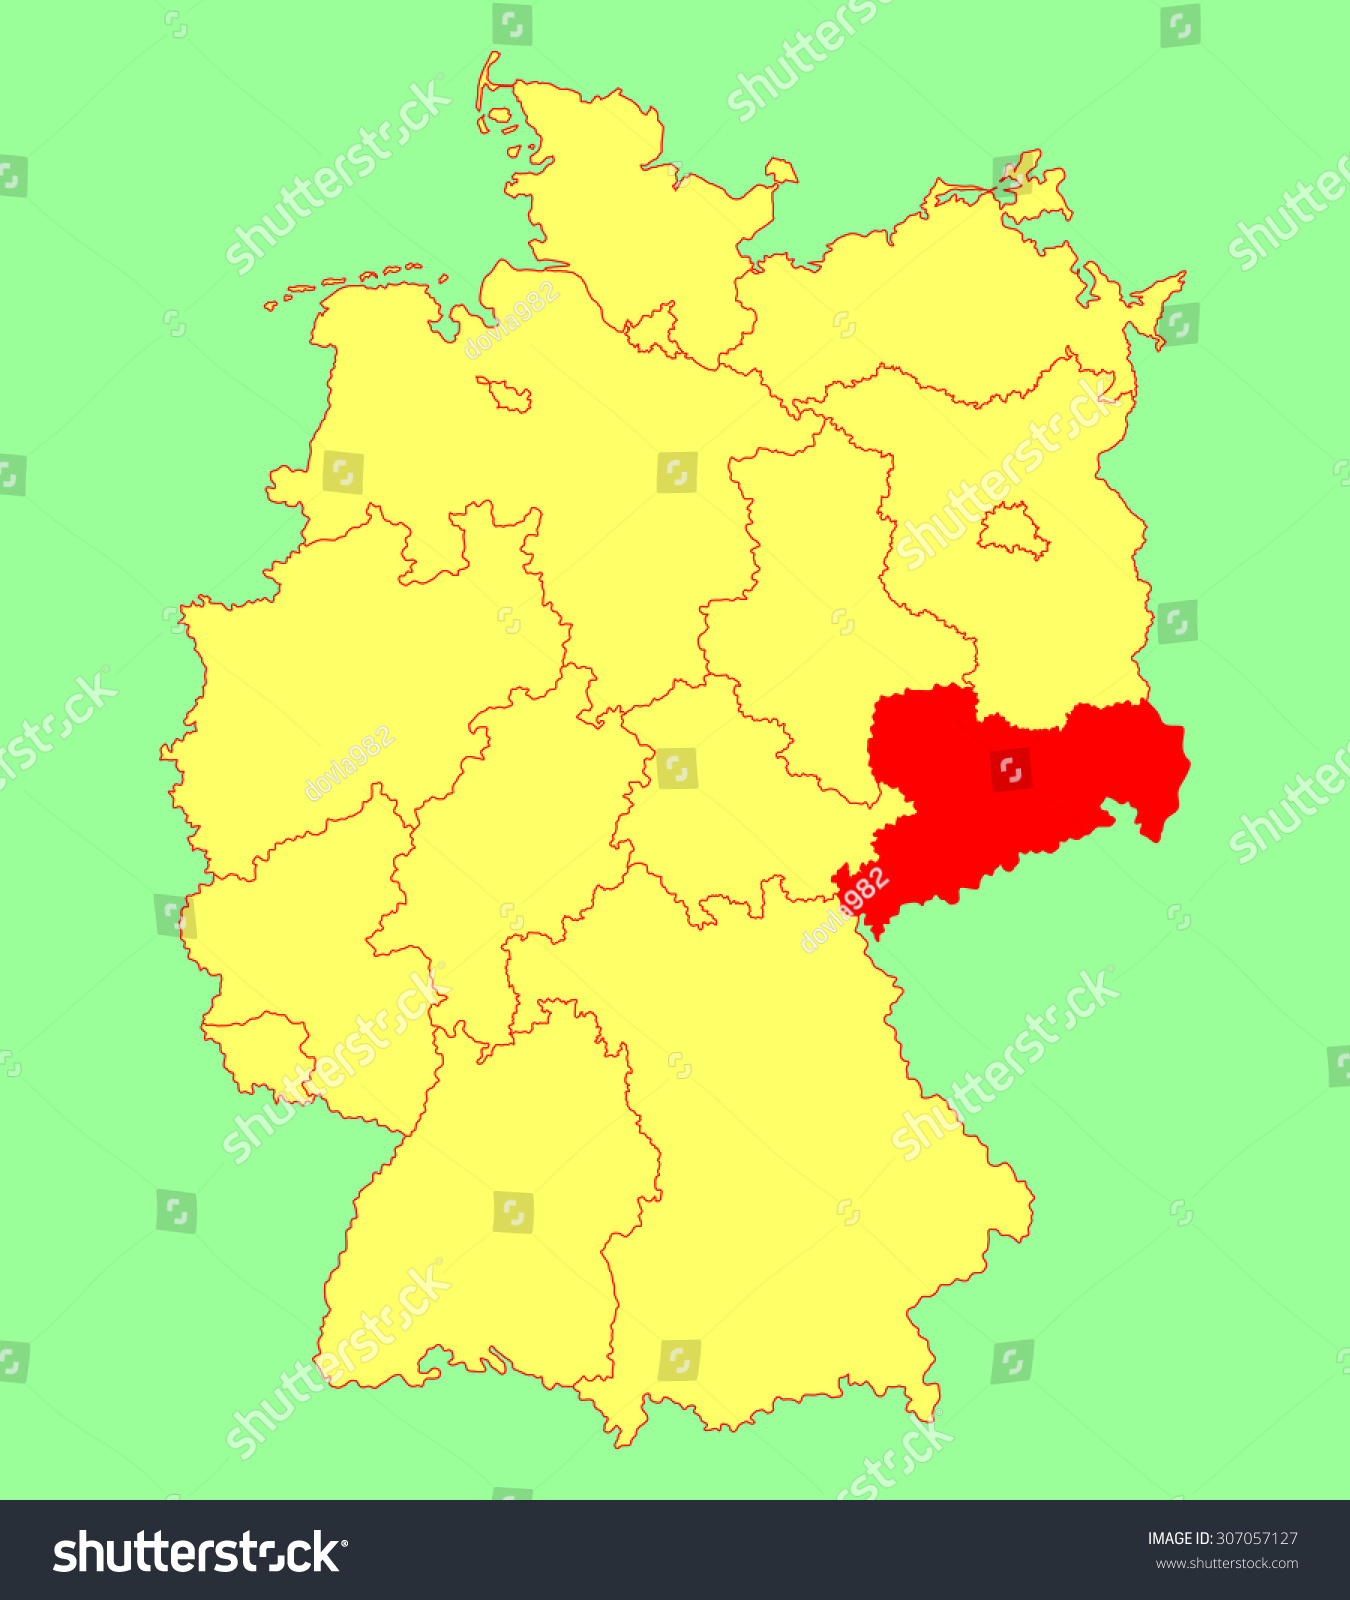 sachsen map saxony state map germany vector map silhouette illustration isolated on germany